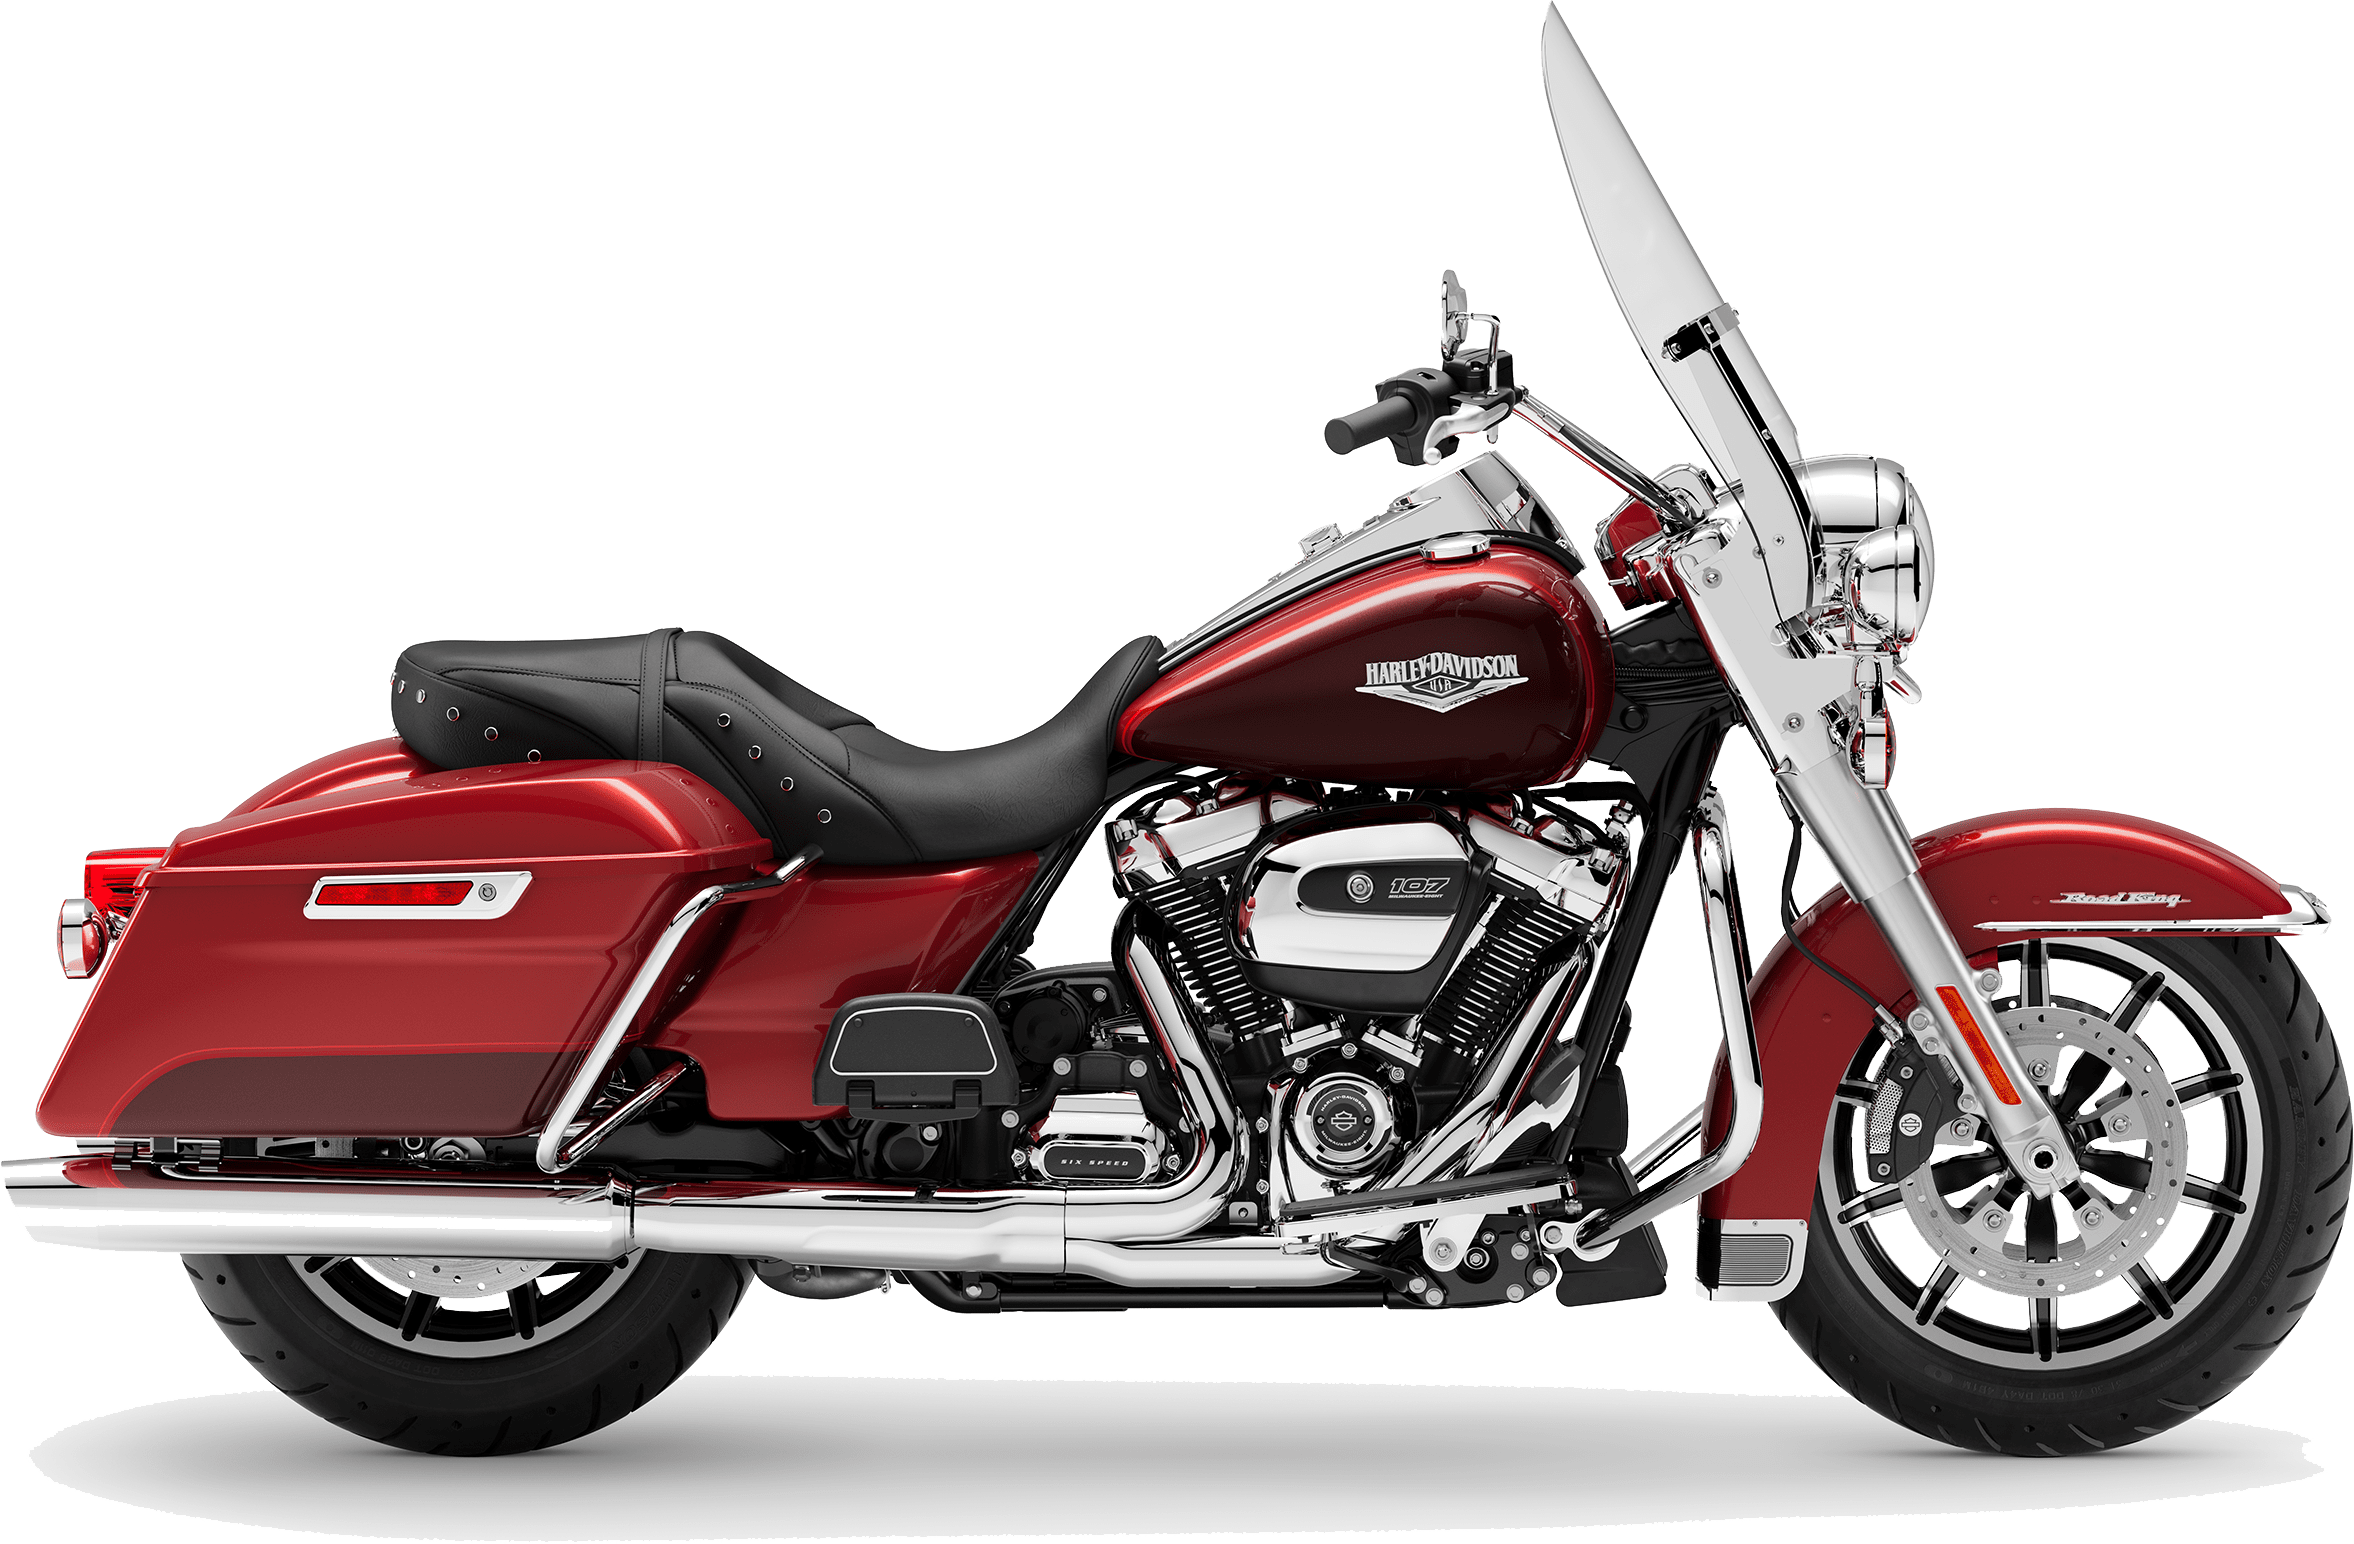 2019 Harley-Davidson H-D Touring Road King Wicked Red Twisted Cherry